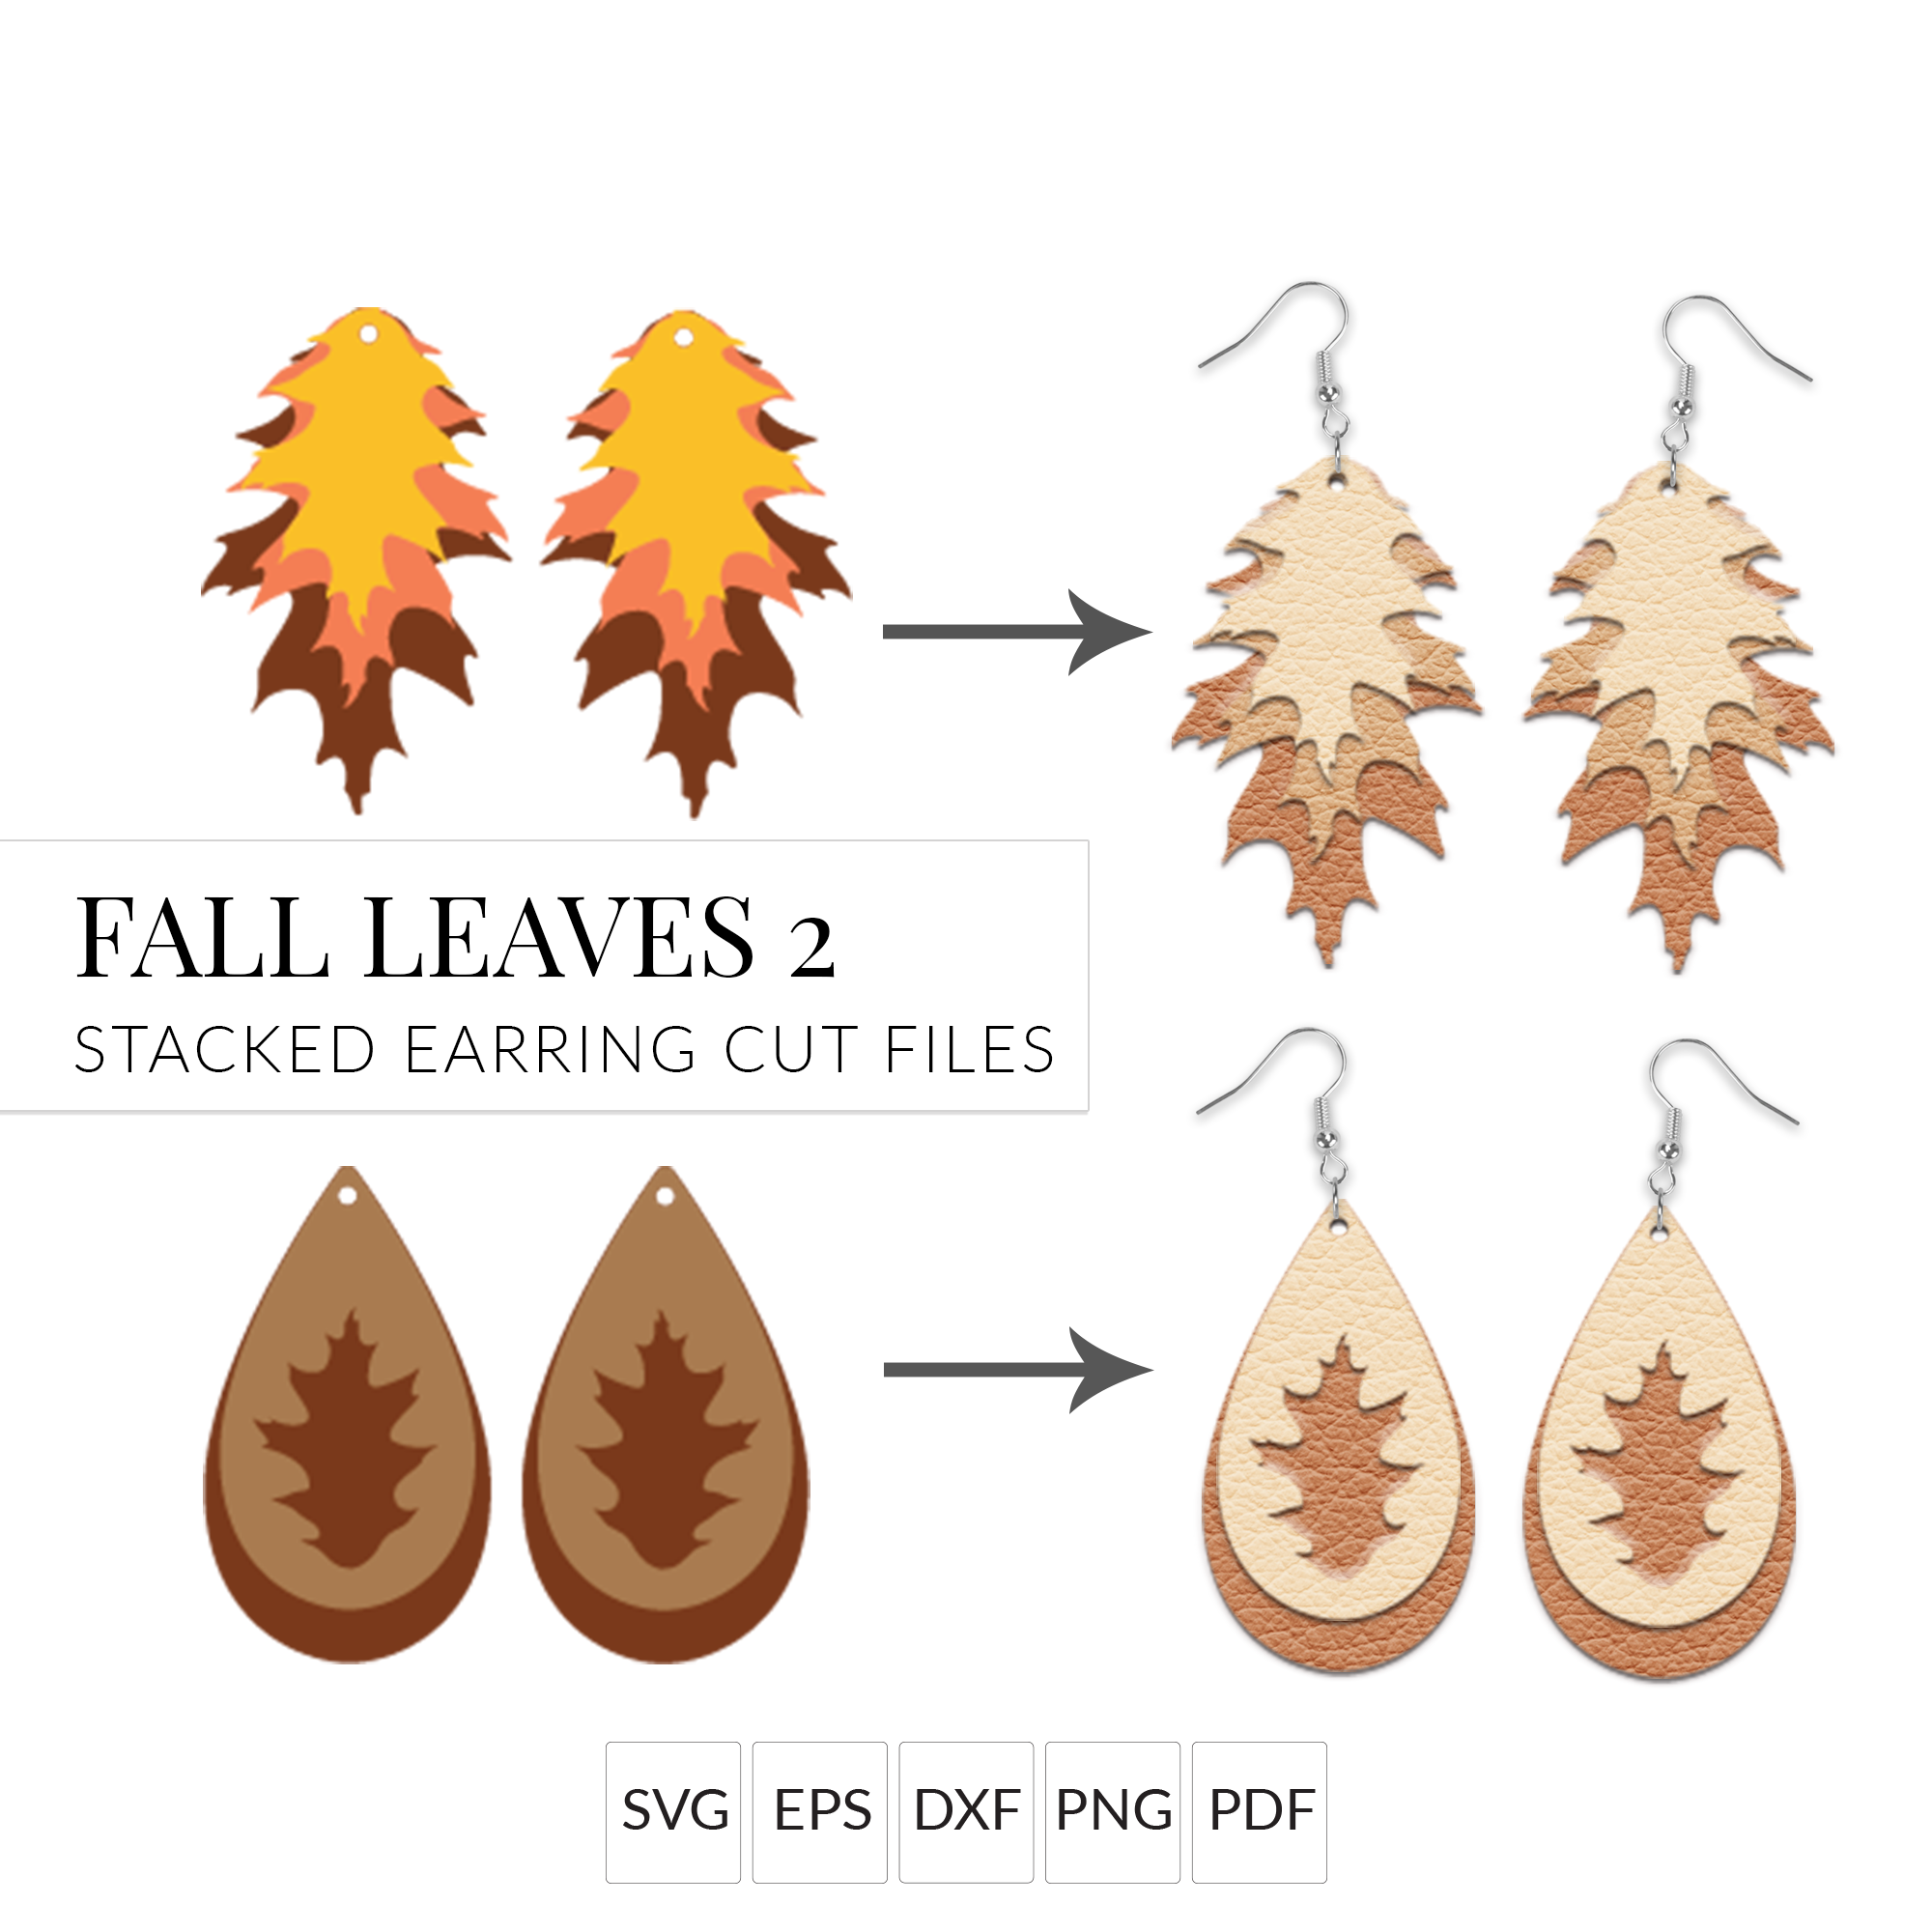 Fall Leaves 2 Autumn Leaf Earring SVG Set of 2 Layered Fall Leaf Earring Cut Files for Cricut & Silhouette